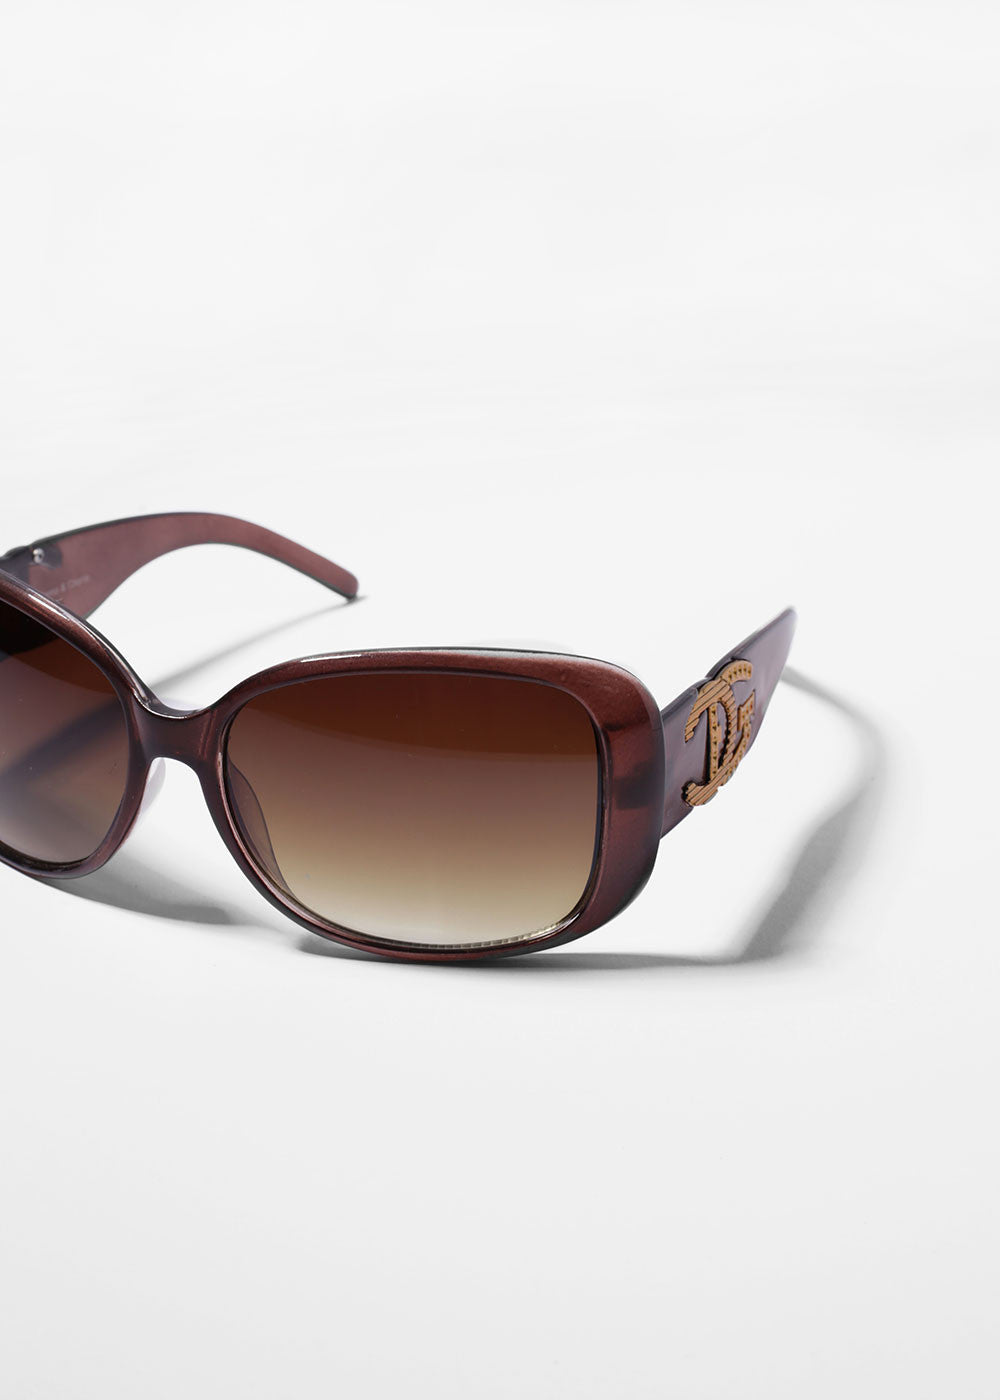 Designer-Inspired Chic Sunglasses- Brown